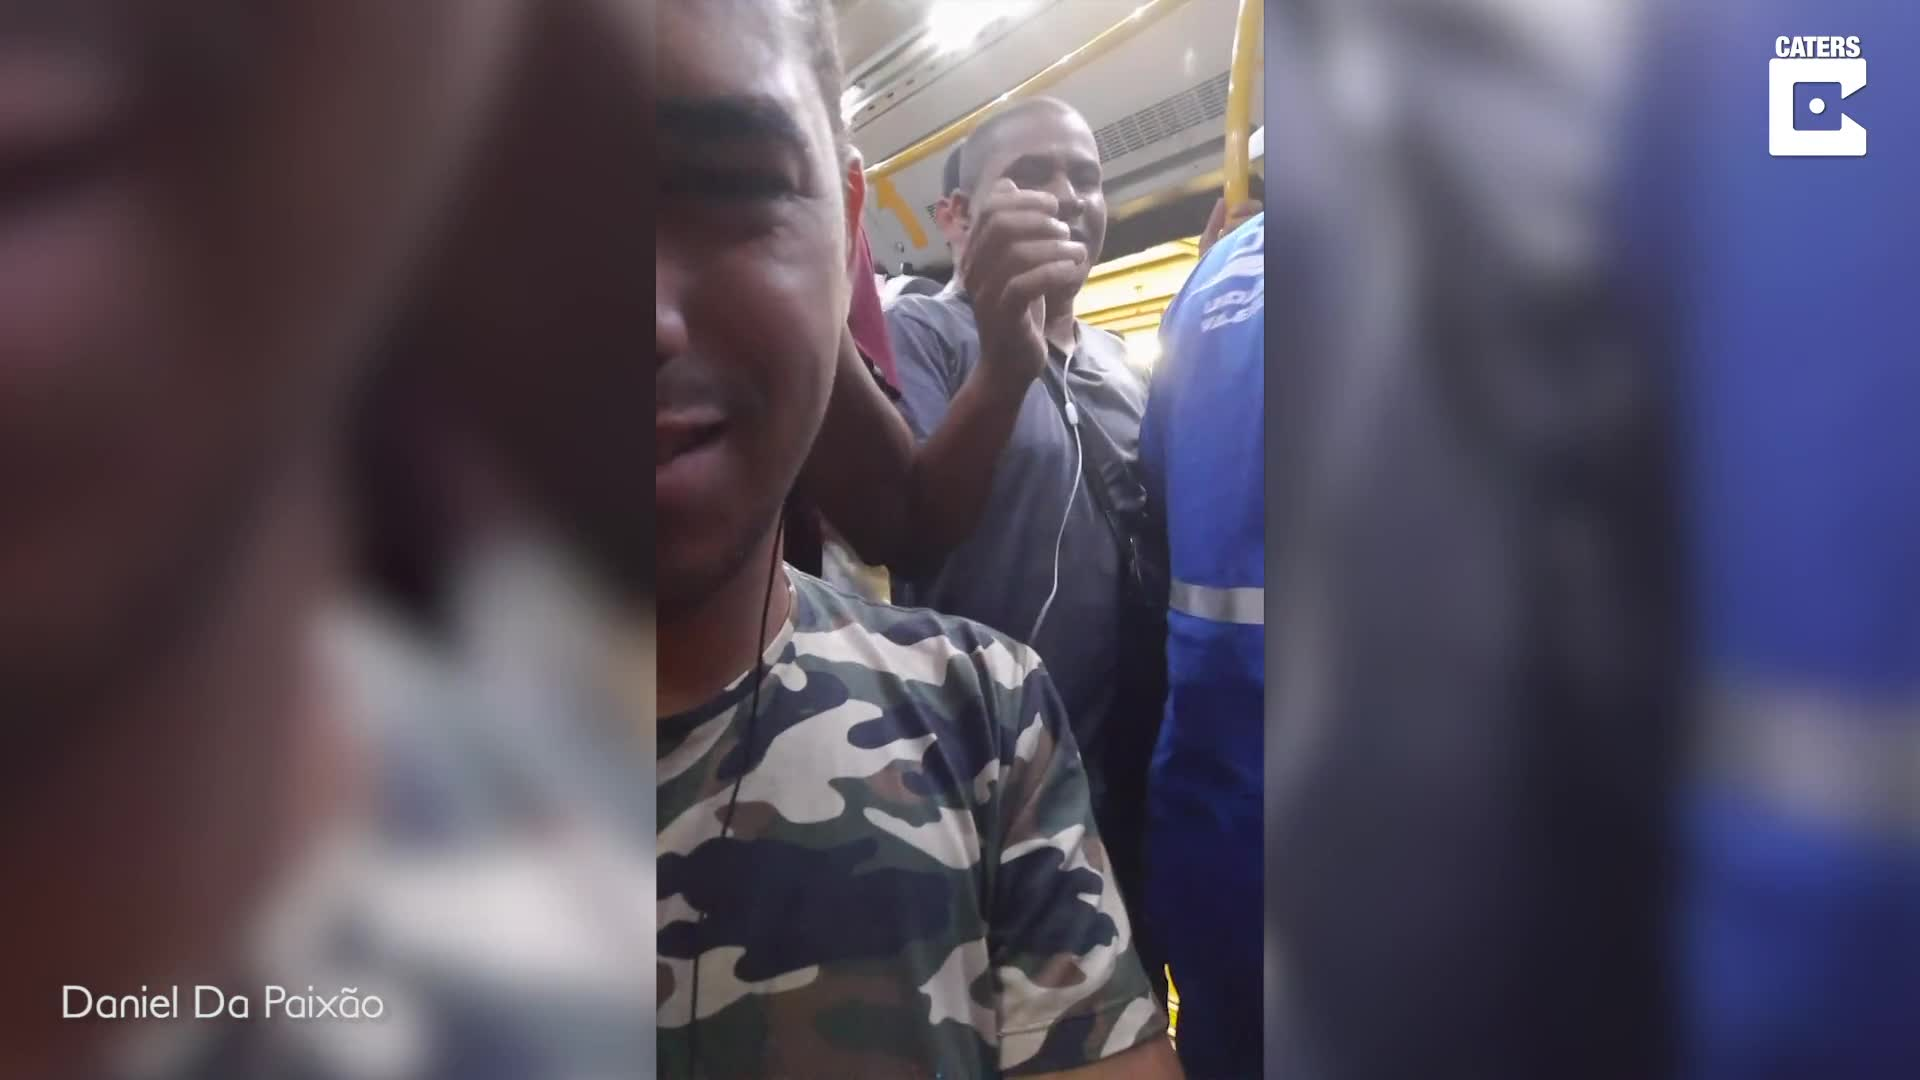 THINK YOUR COMMUTE IS BAD? SHOCKING MOMENT FRENZIED CROWD VIOLENTLY SWARMS INTO SUBWAY CAR